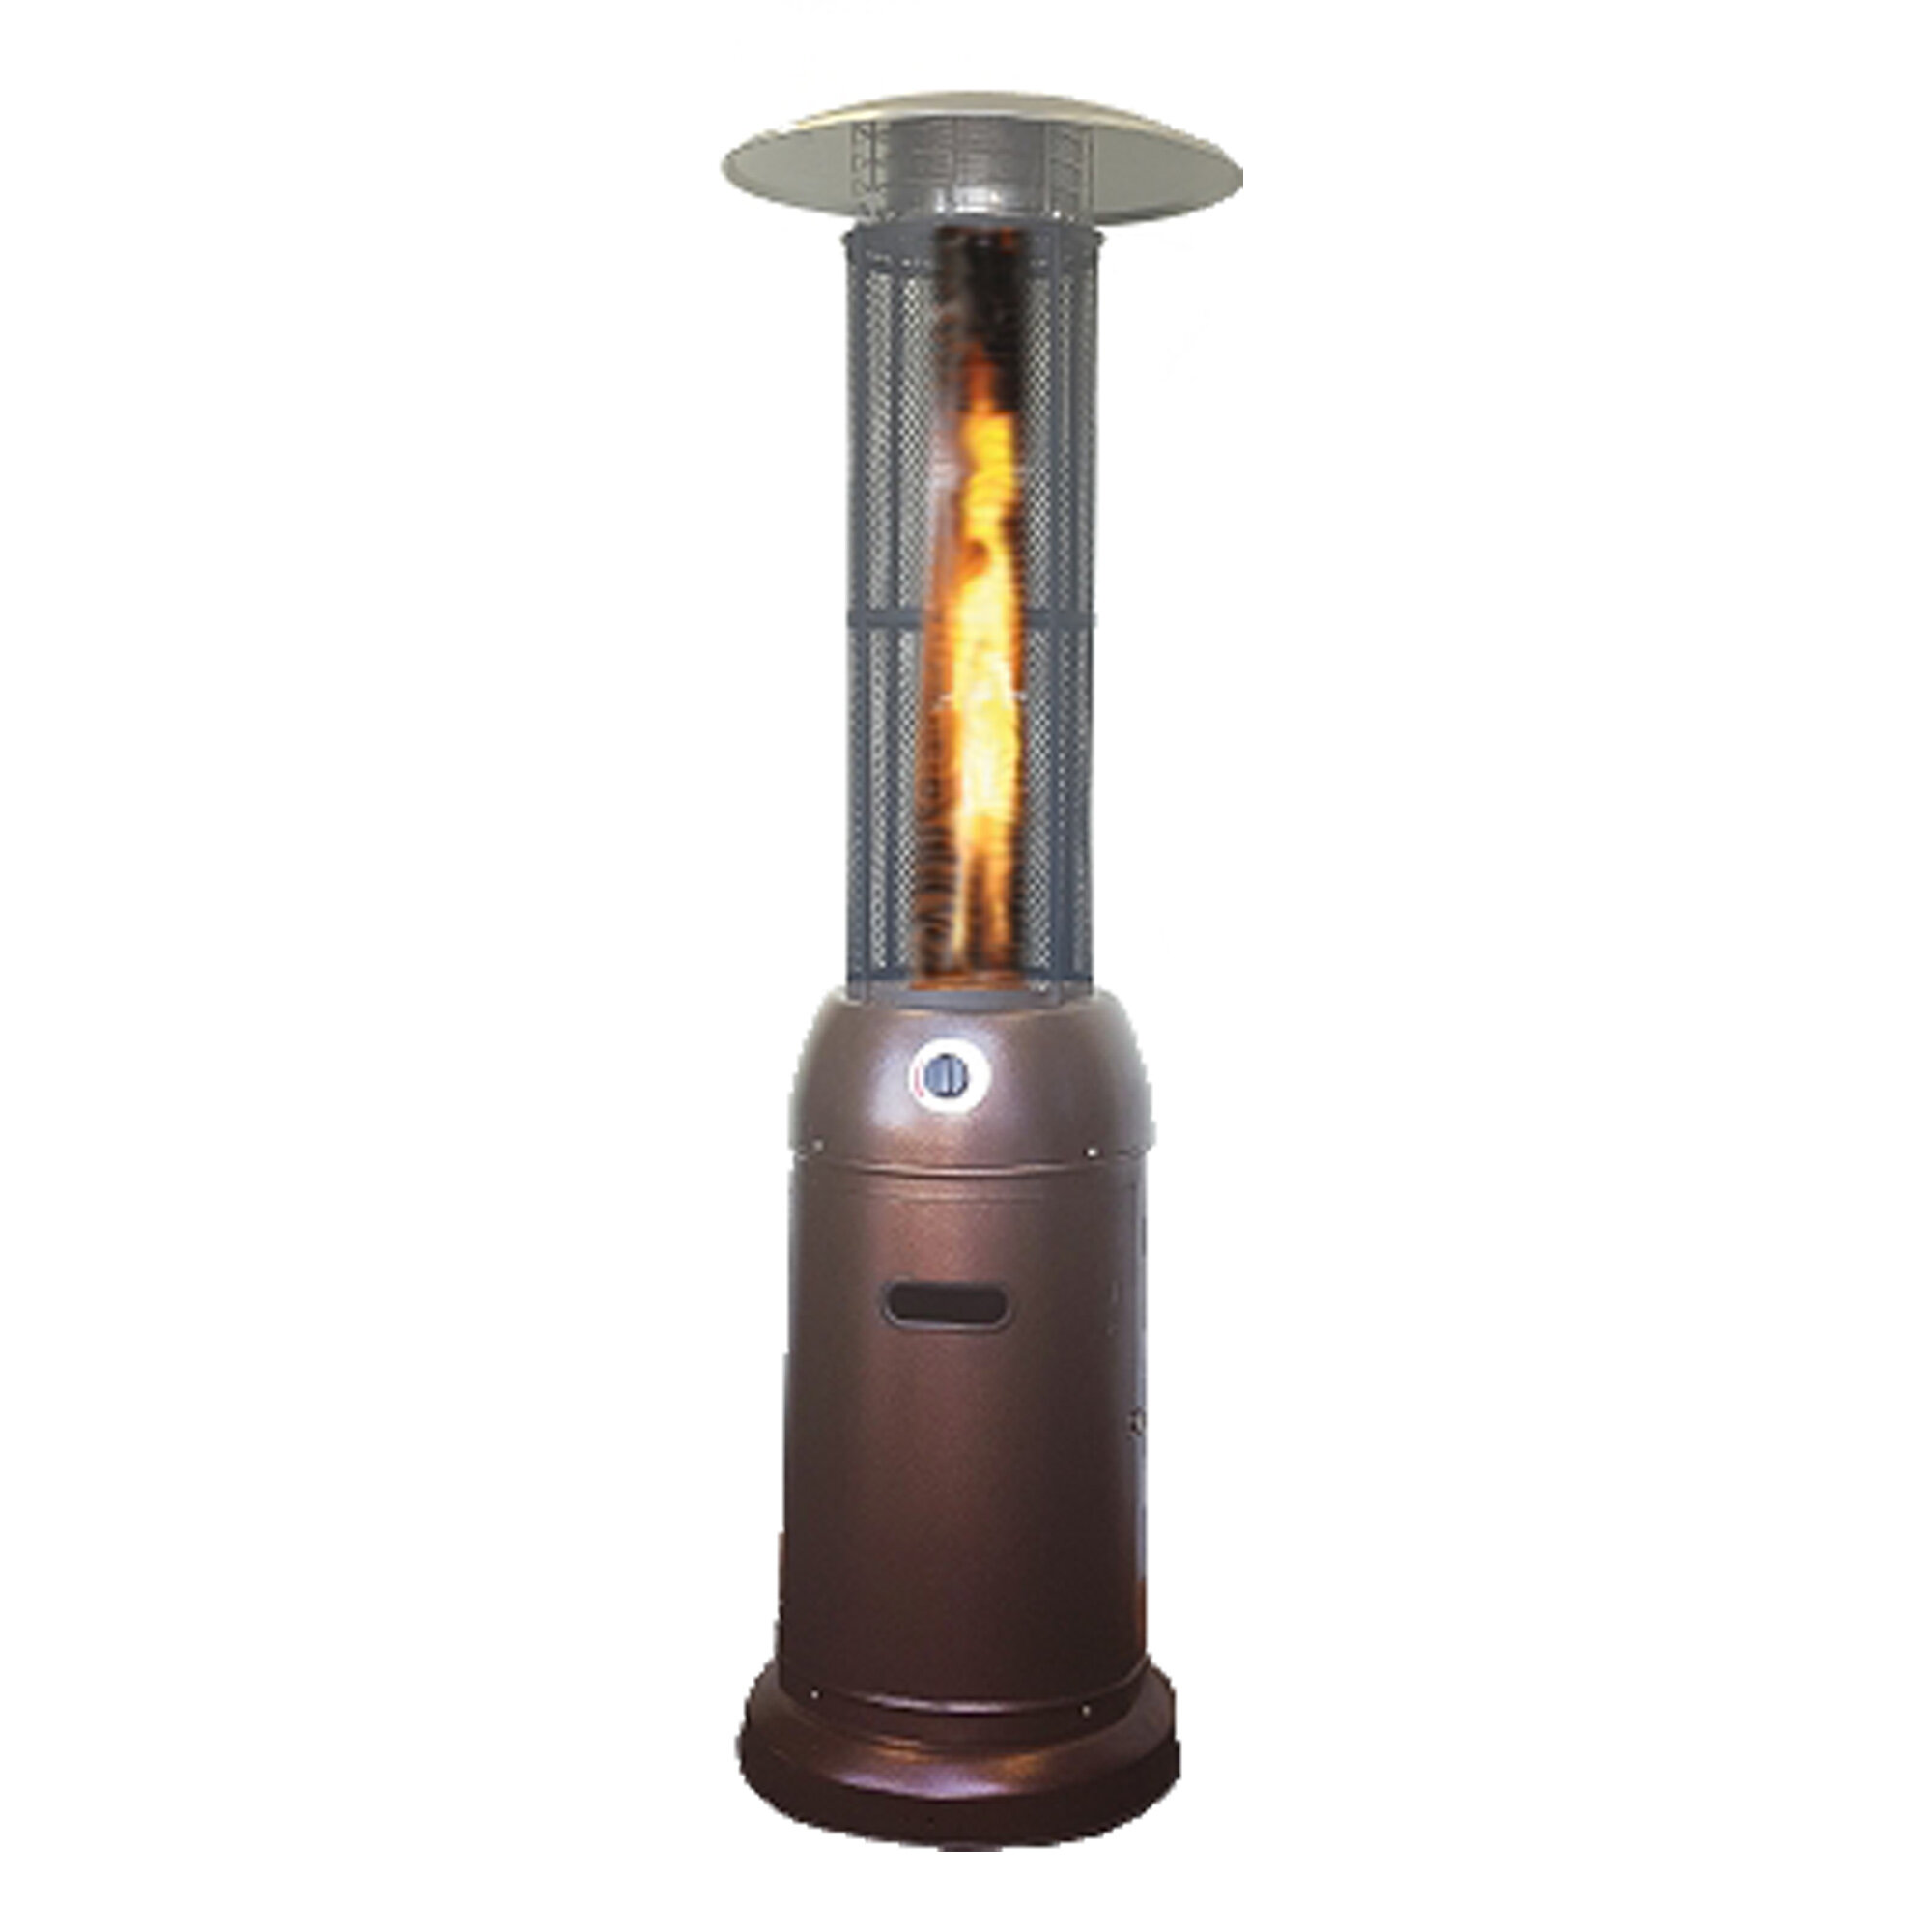 Beau SUNHEAT Flame Round Glass Tube 46,000 BTU Propane Patio Heater | Wayfair